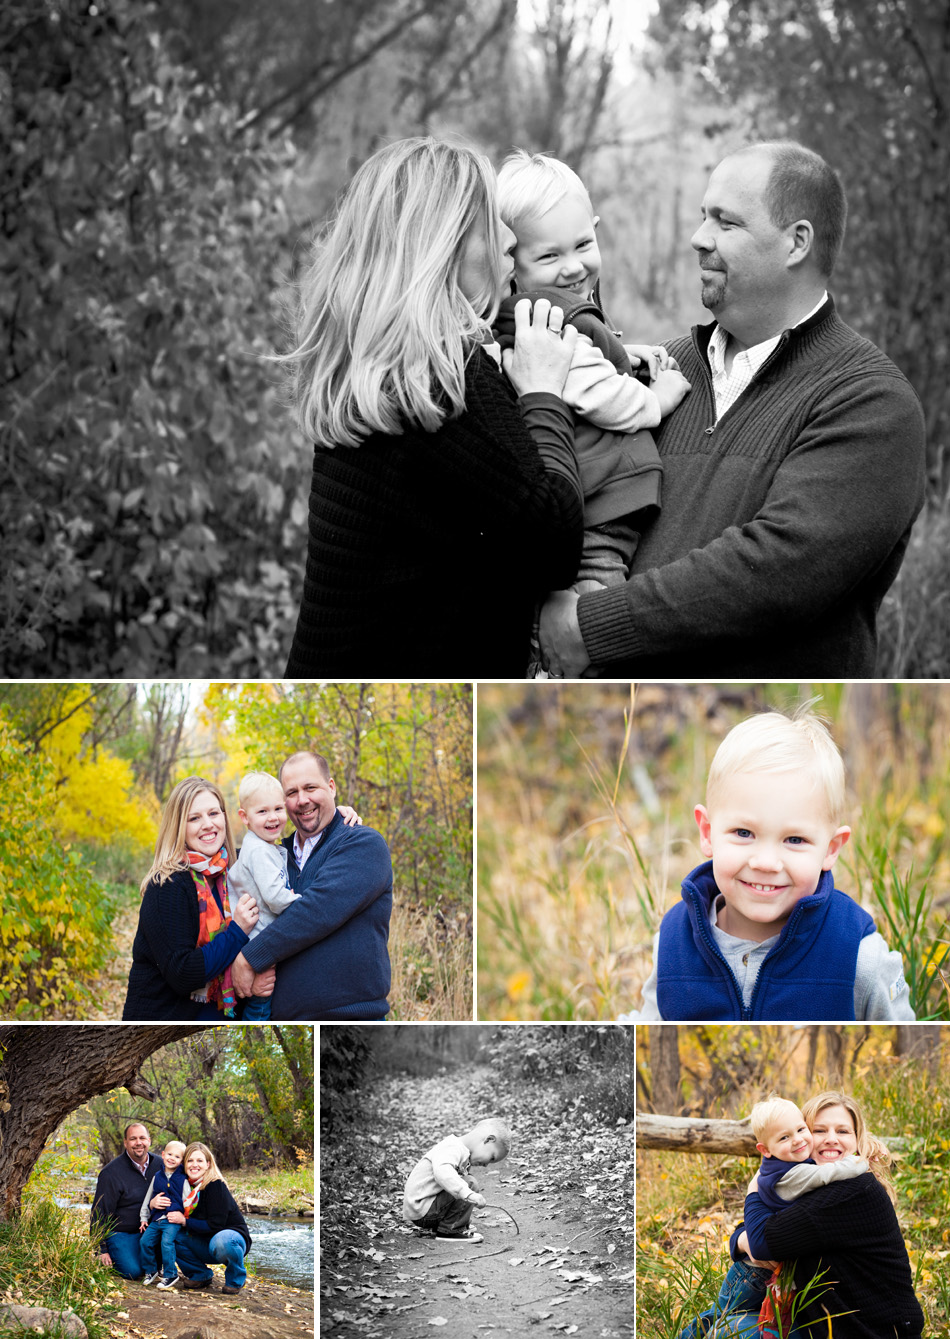 Denver Family Portrait Photographer